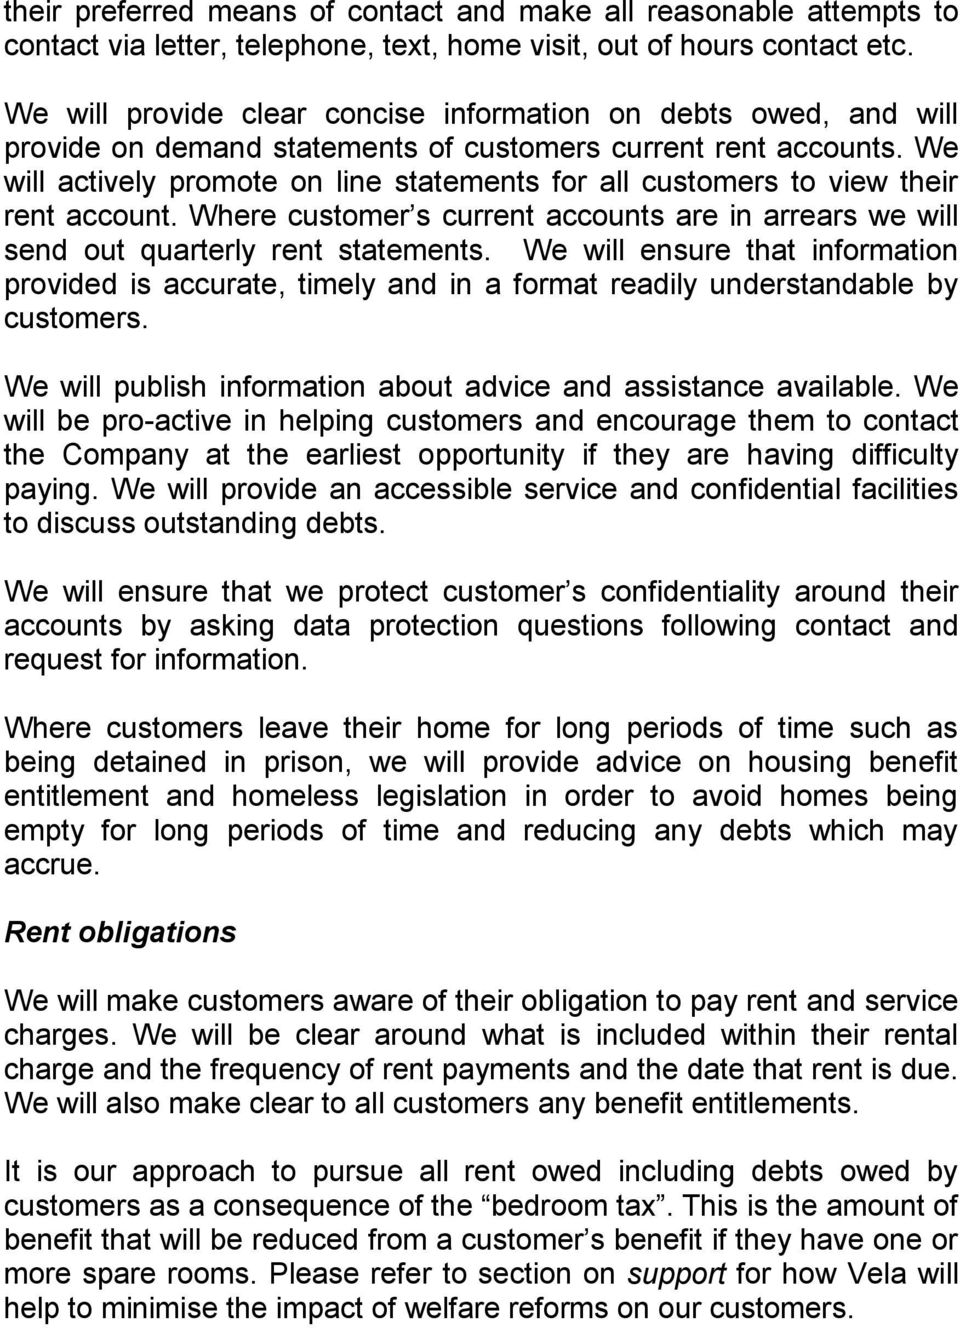 We will actively promote on line statements for all customers to view their rent account. Where customer s current accounts are in arrears we will send out quarterly rent statements.